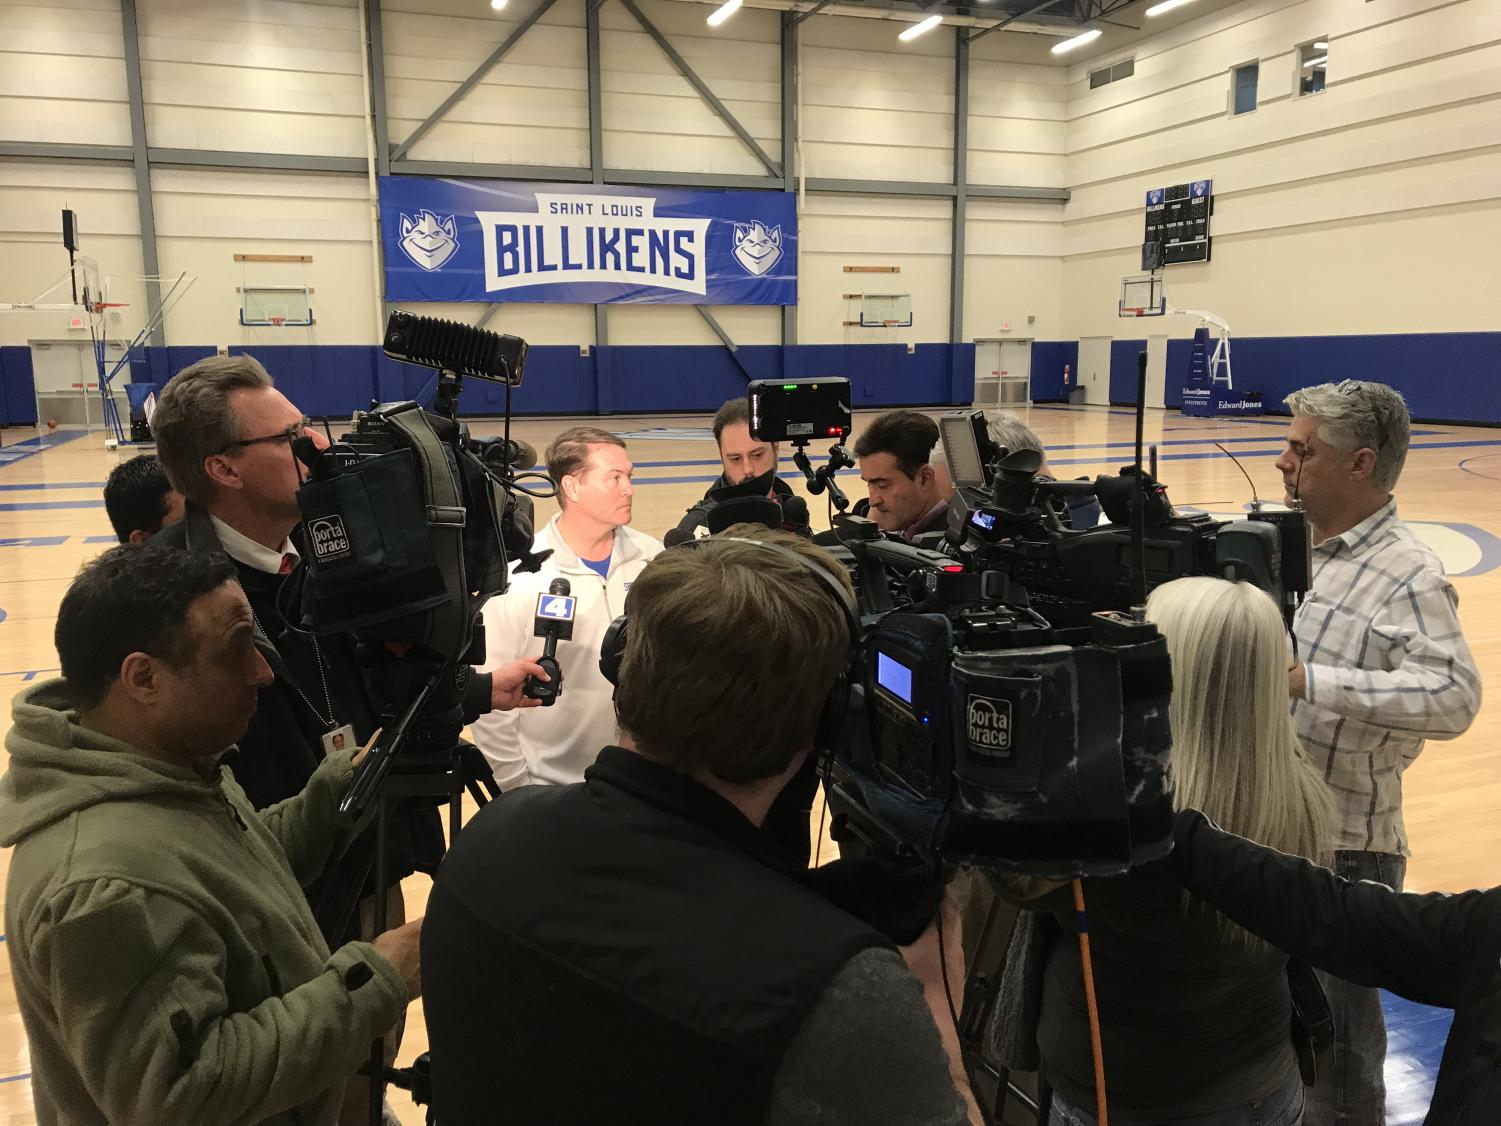 SLU Men's Basketball head coach Travis Ford addresses the media on Tuesday, Feb. 13. Freshman guard Jordan Goodwin has been suspended for the remainder of the season.